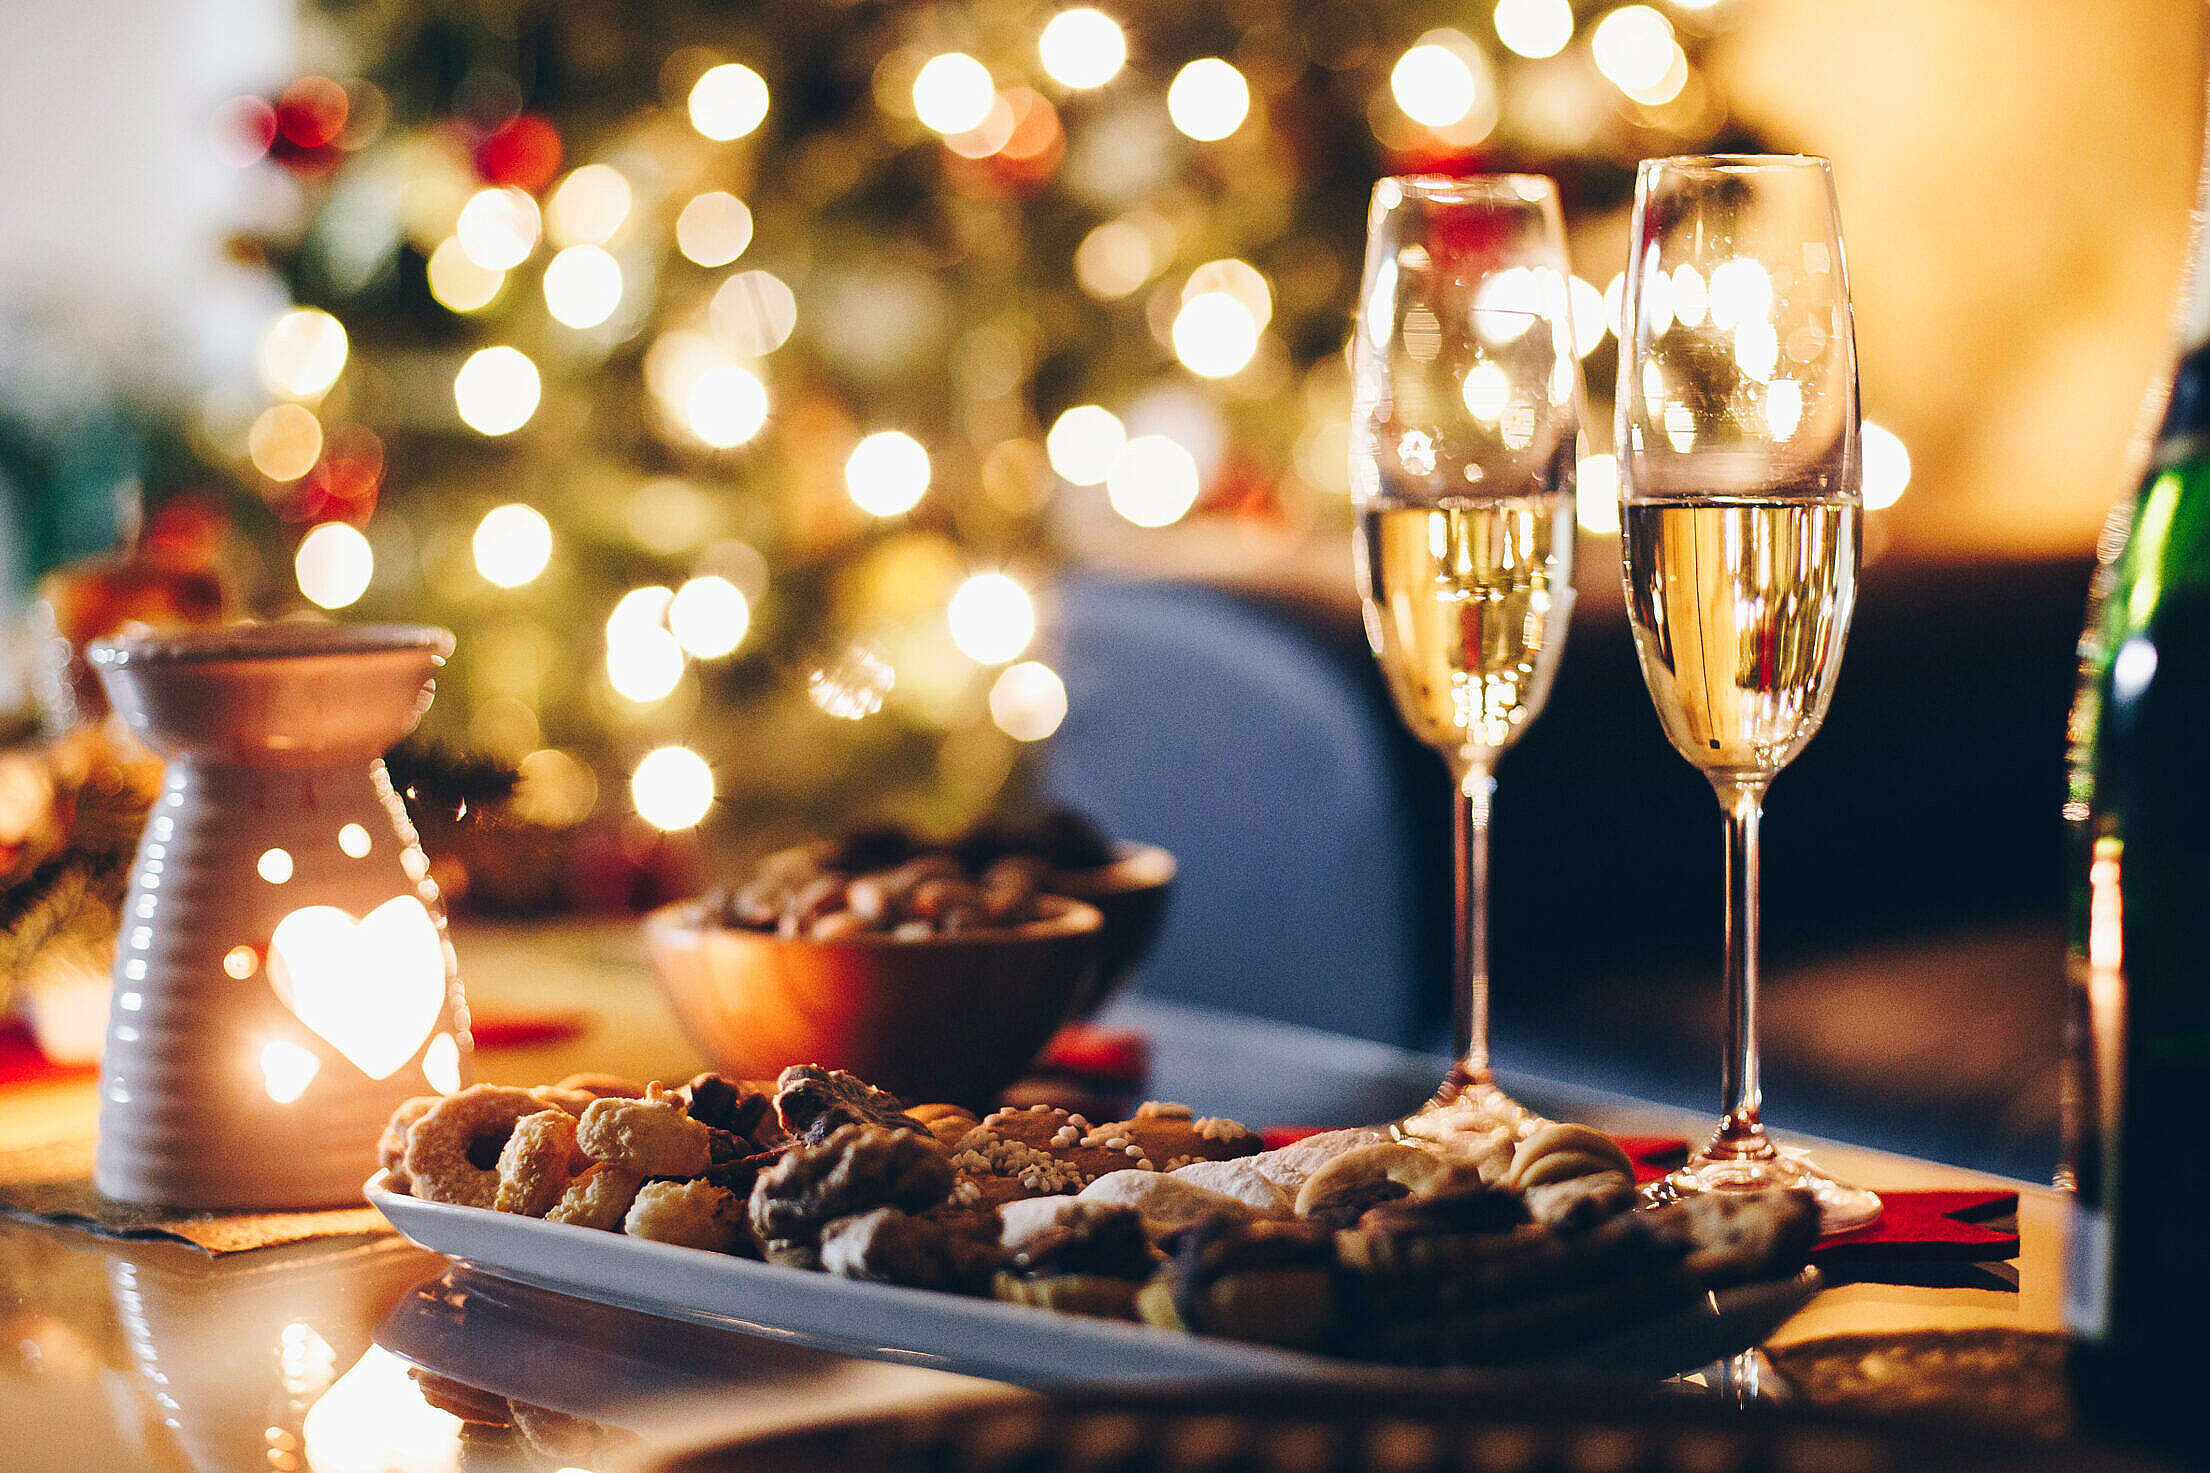 New Year's Eve Champagne Home Party Free Stock Photo